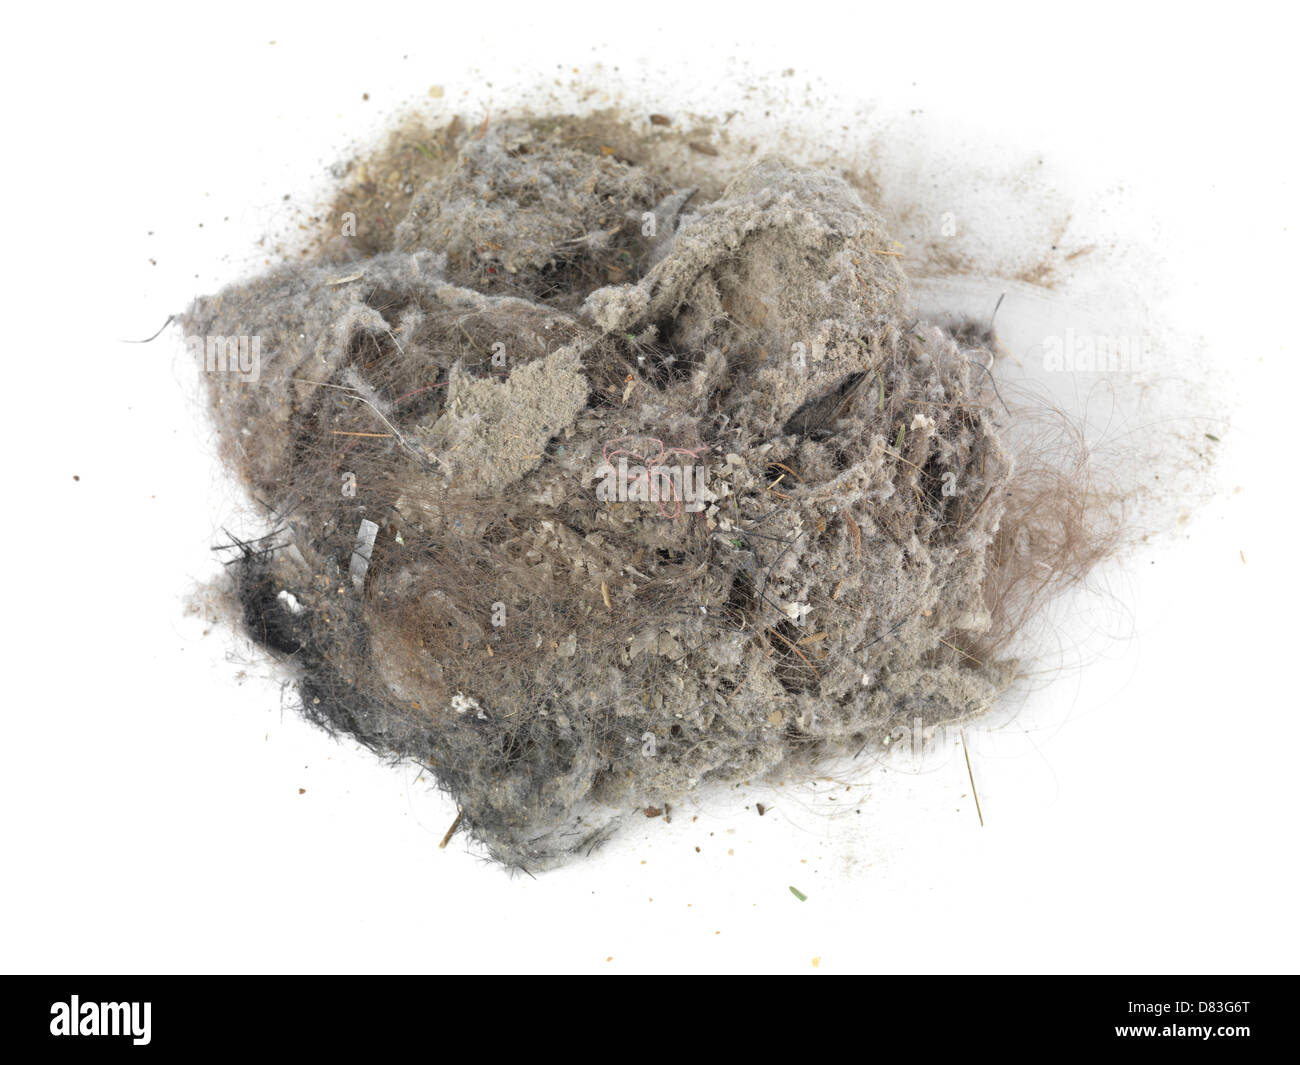 Pile of dust and hairs collected with a vacuum cleaner isolated on white background - Stock Image